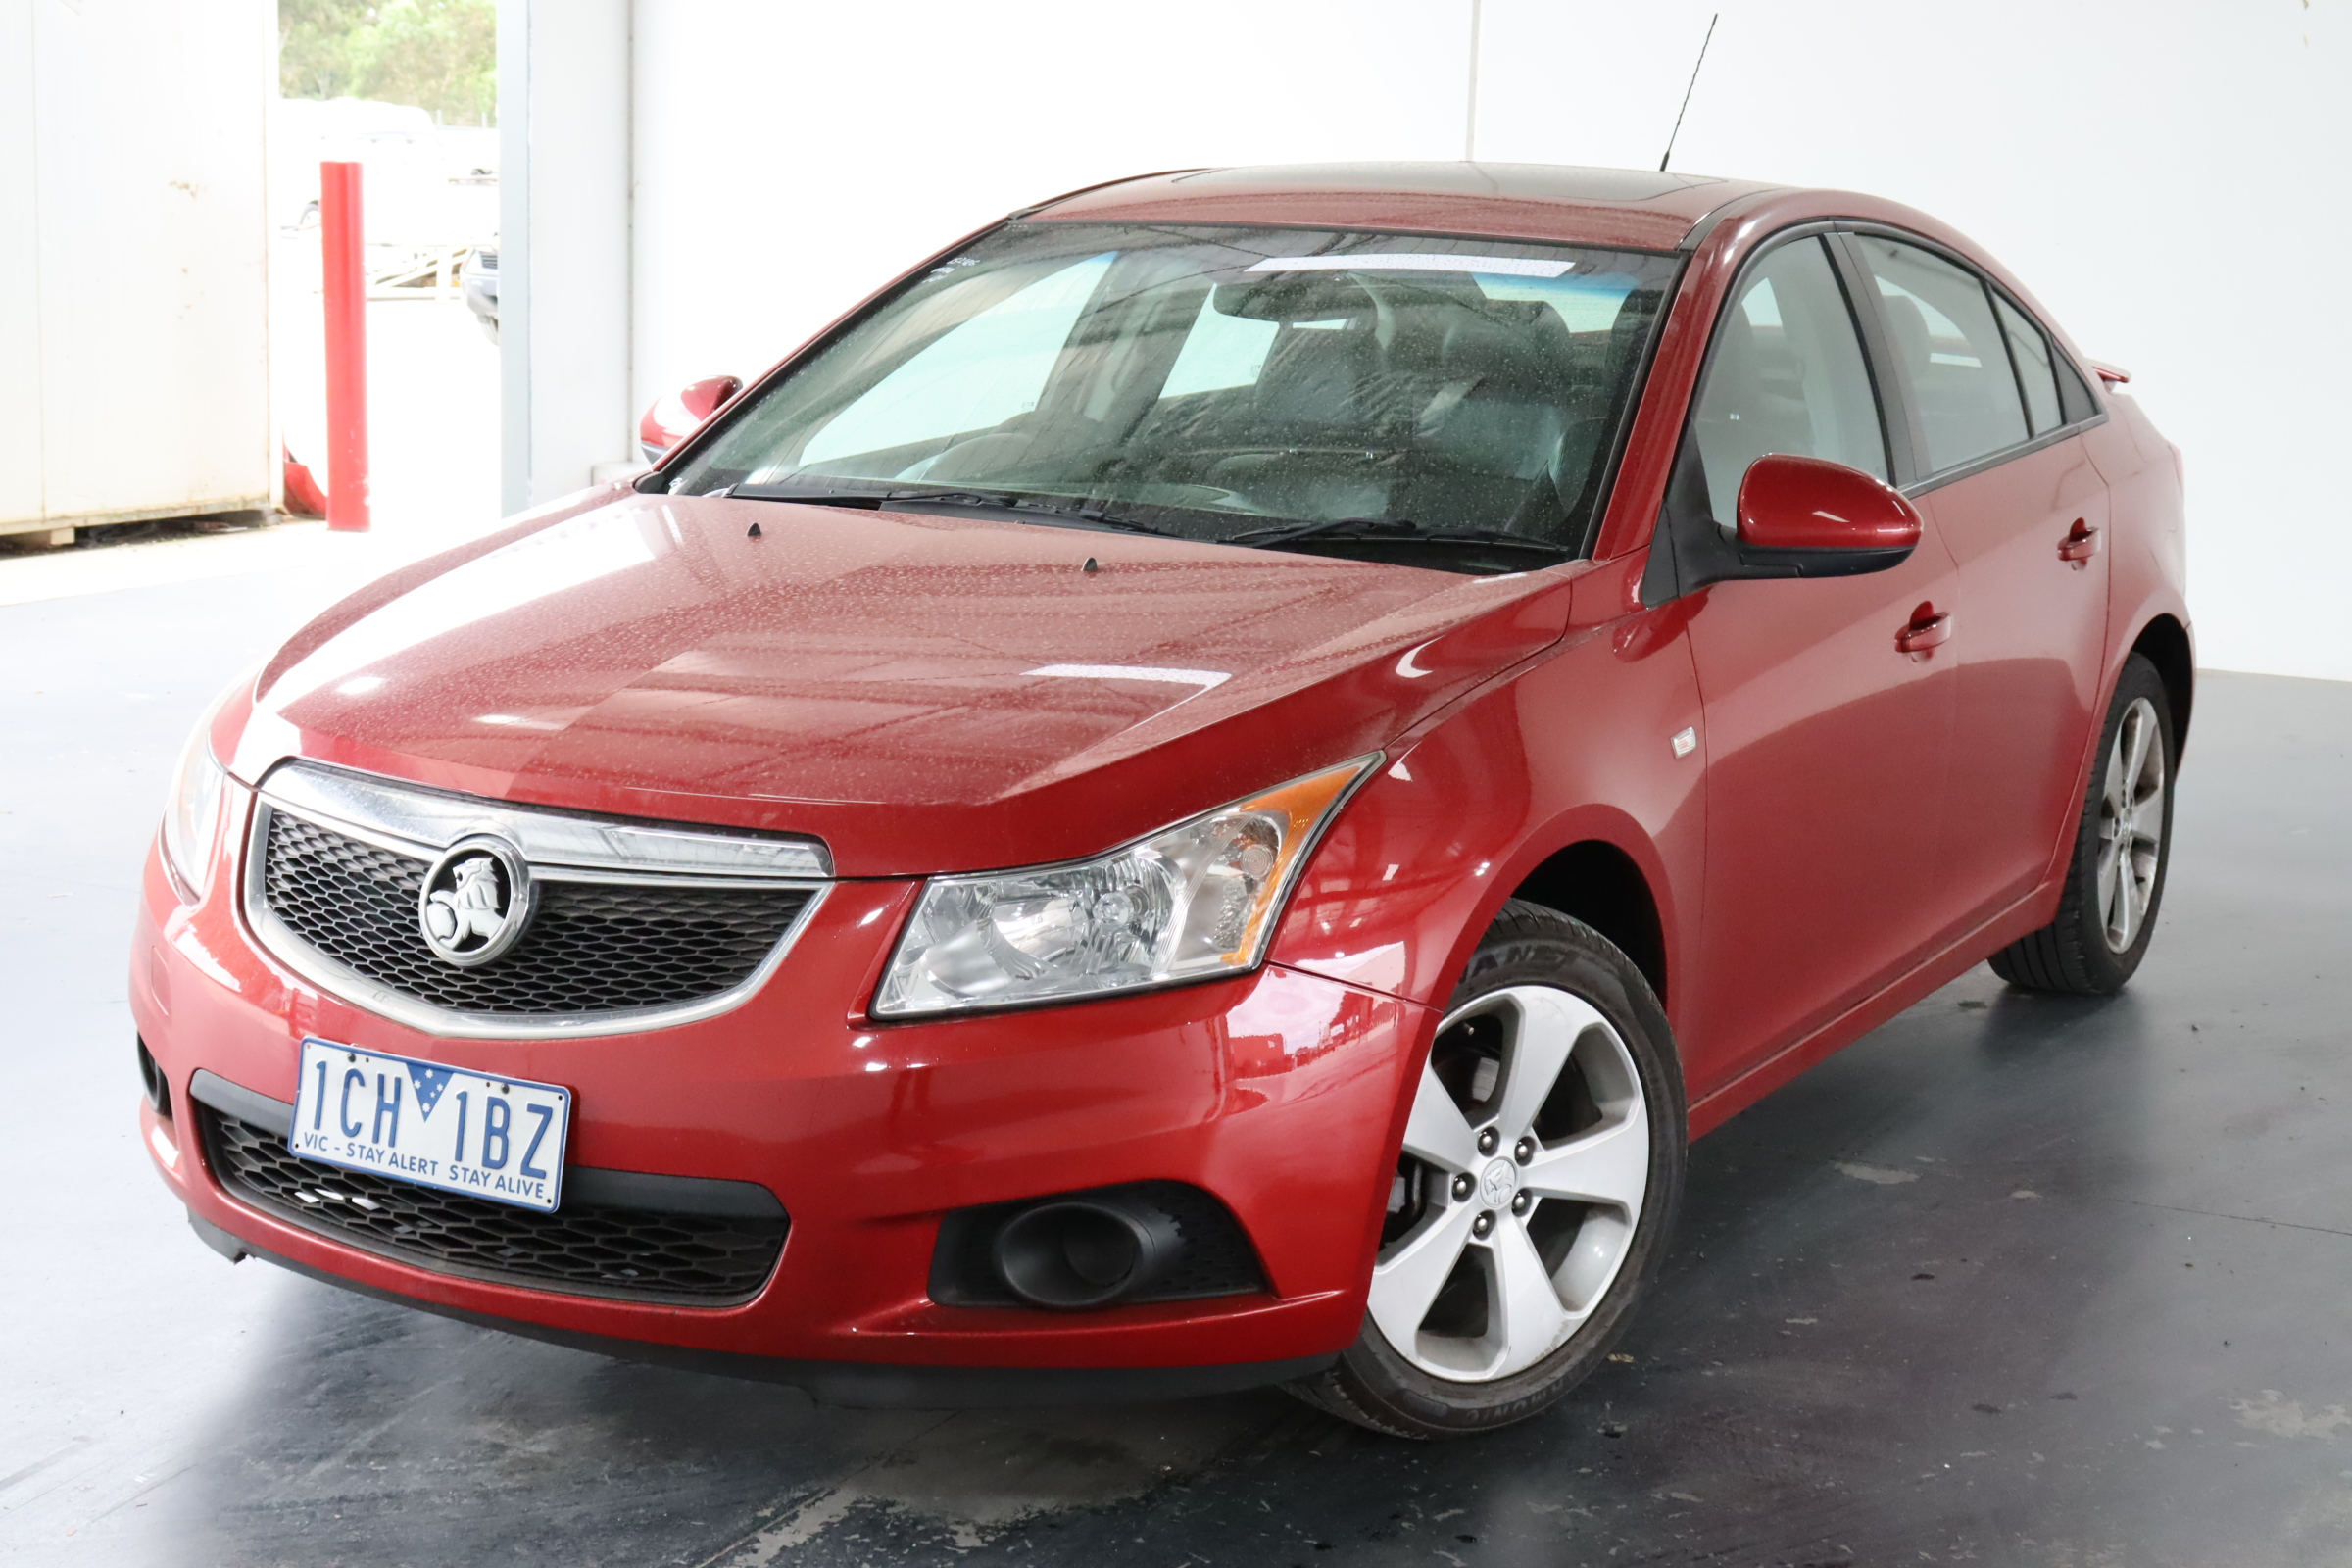 2011 Holden Cruze CD JH Automatic Sedan (WOVR Inspected)